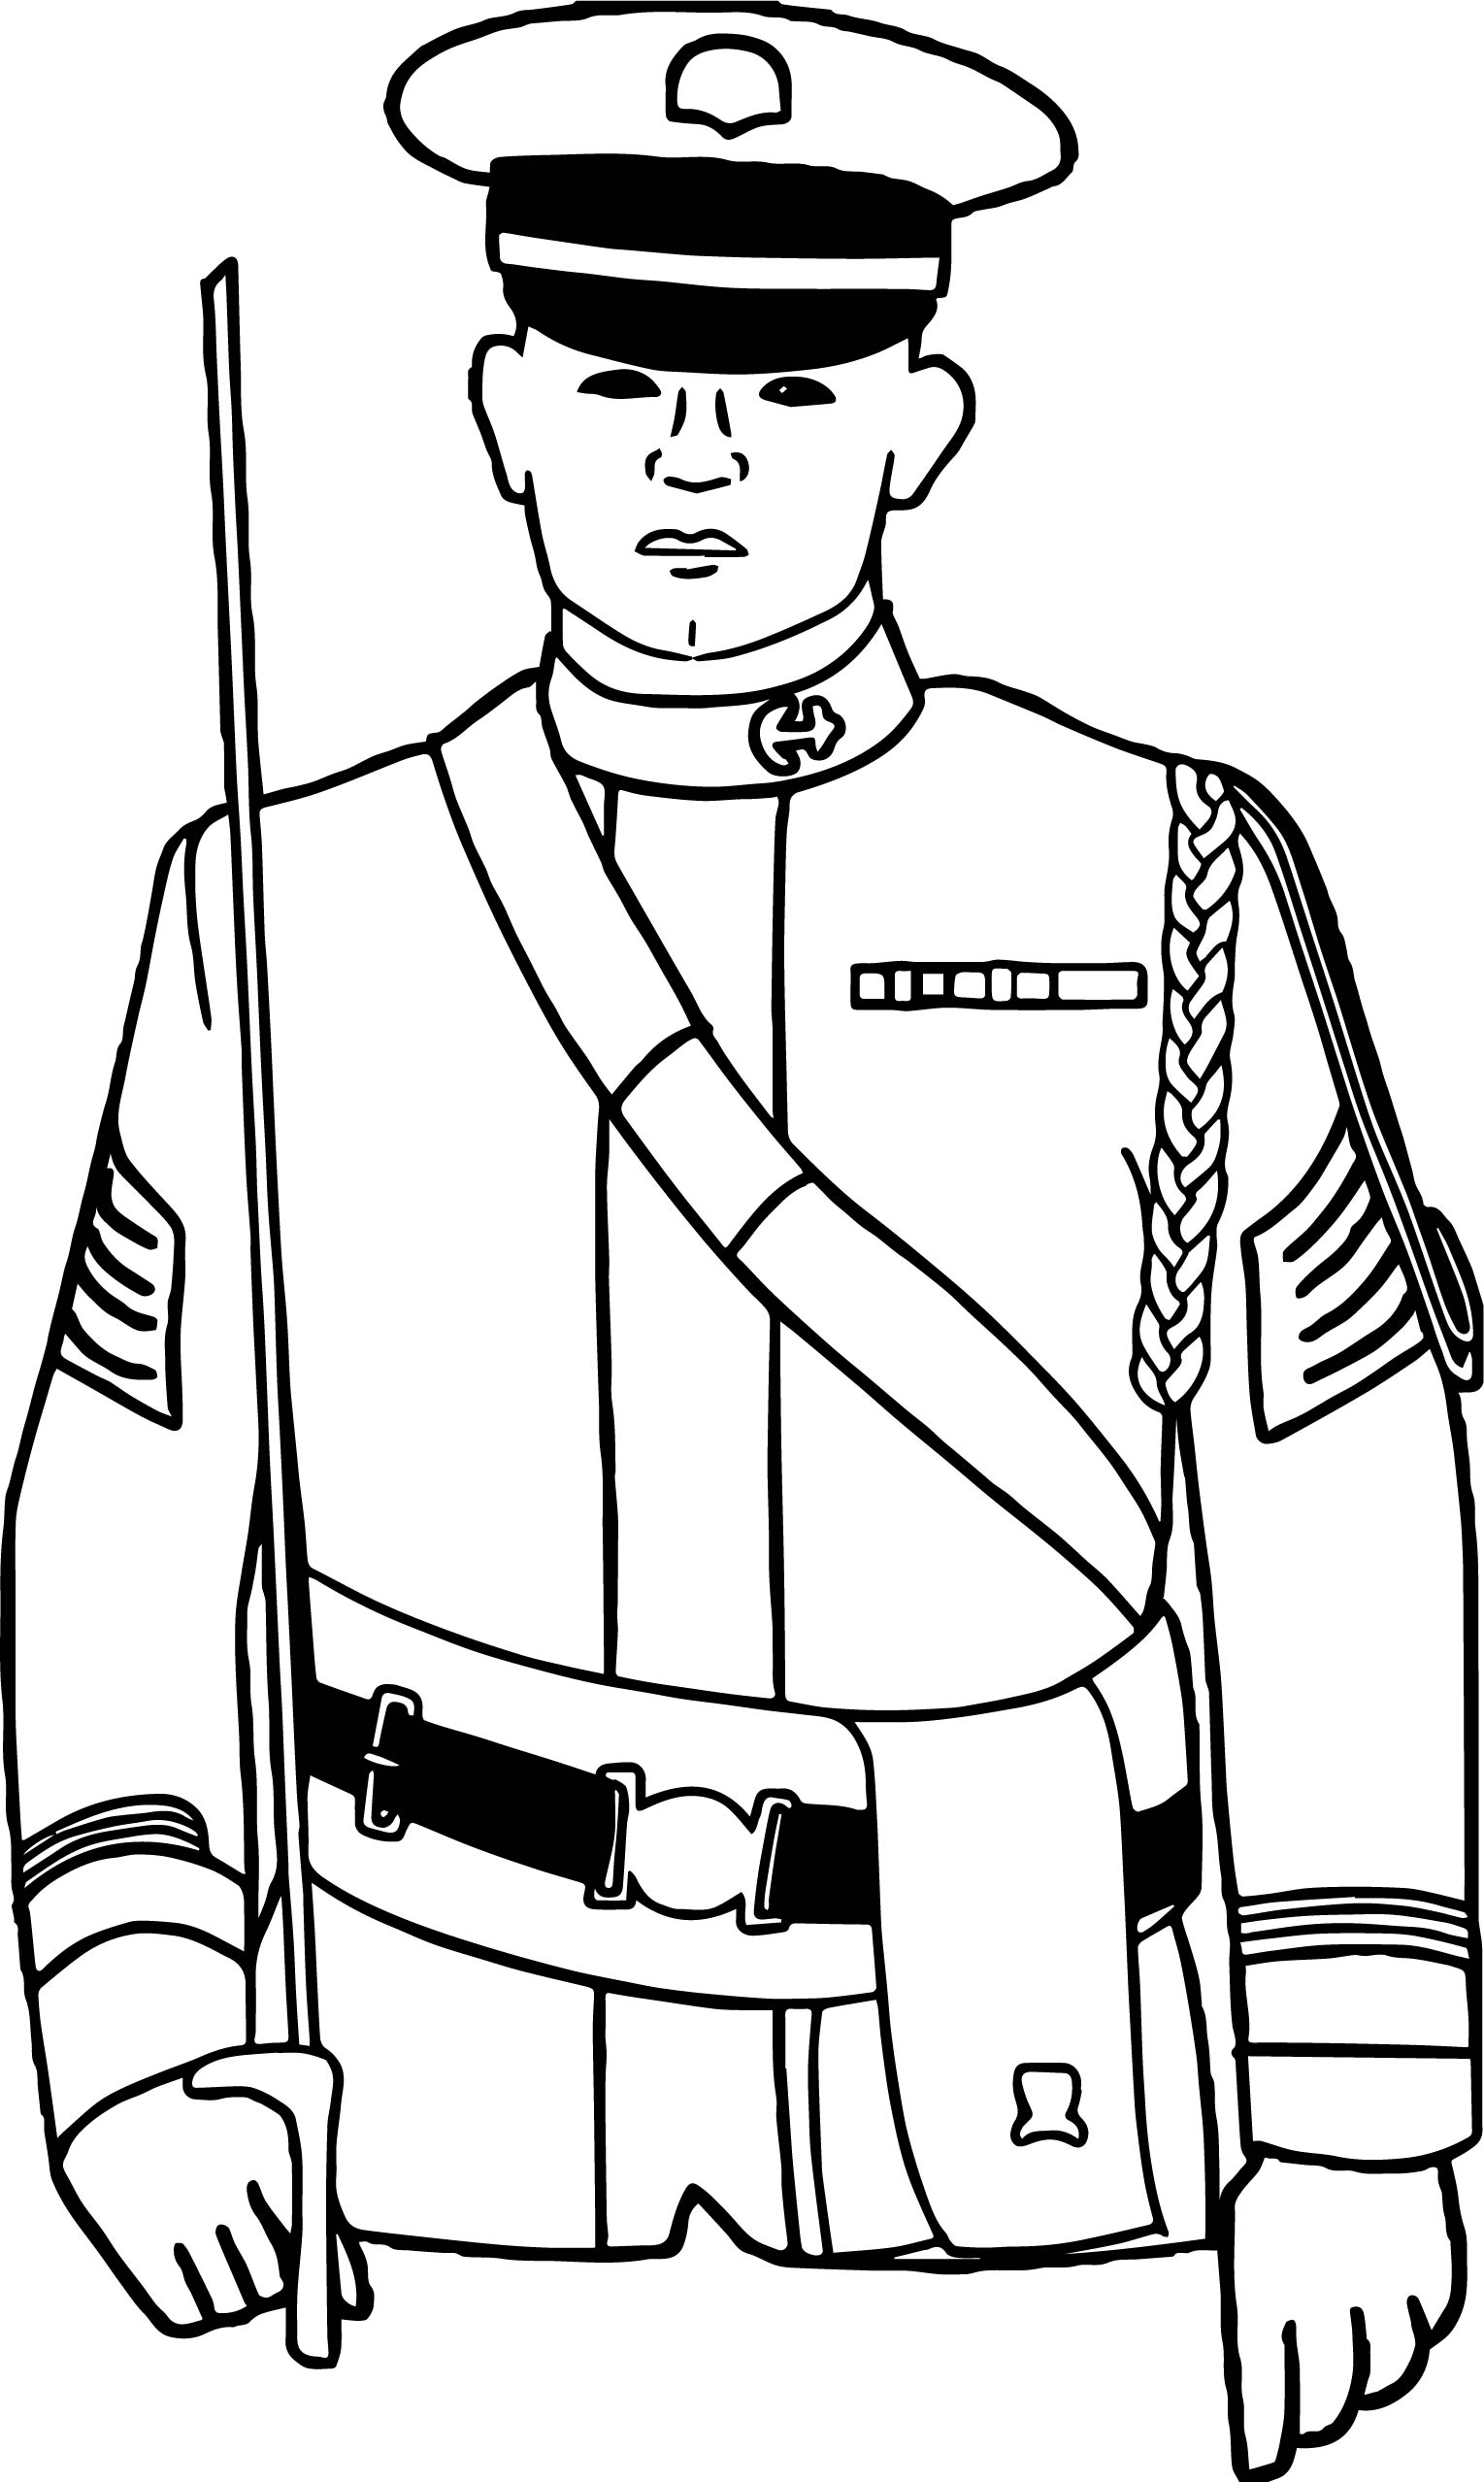 army coloring pictures army coloring pages soldier at getdrawings free download pictures coloring army